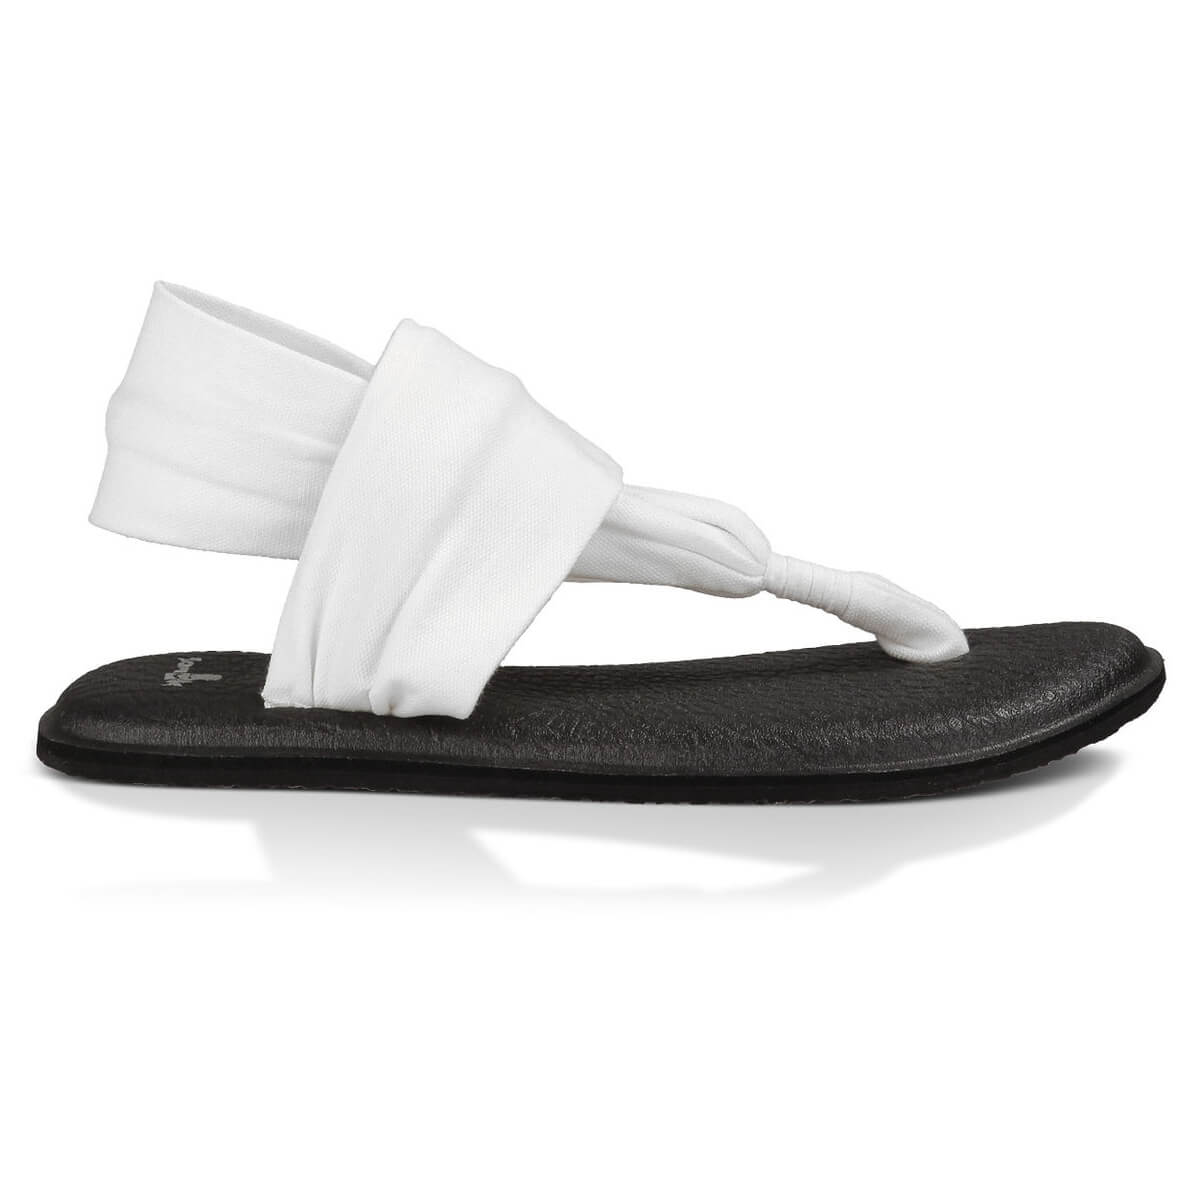 Where Can You Buy Sanuk Shoes